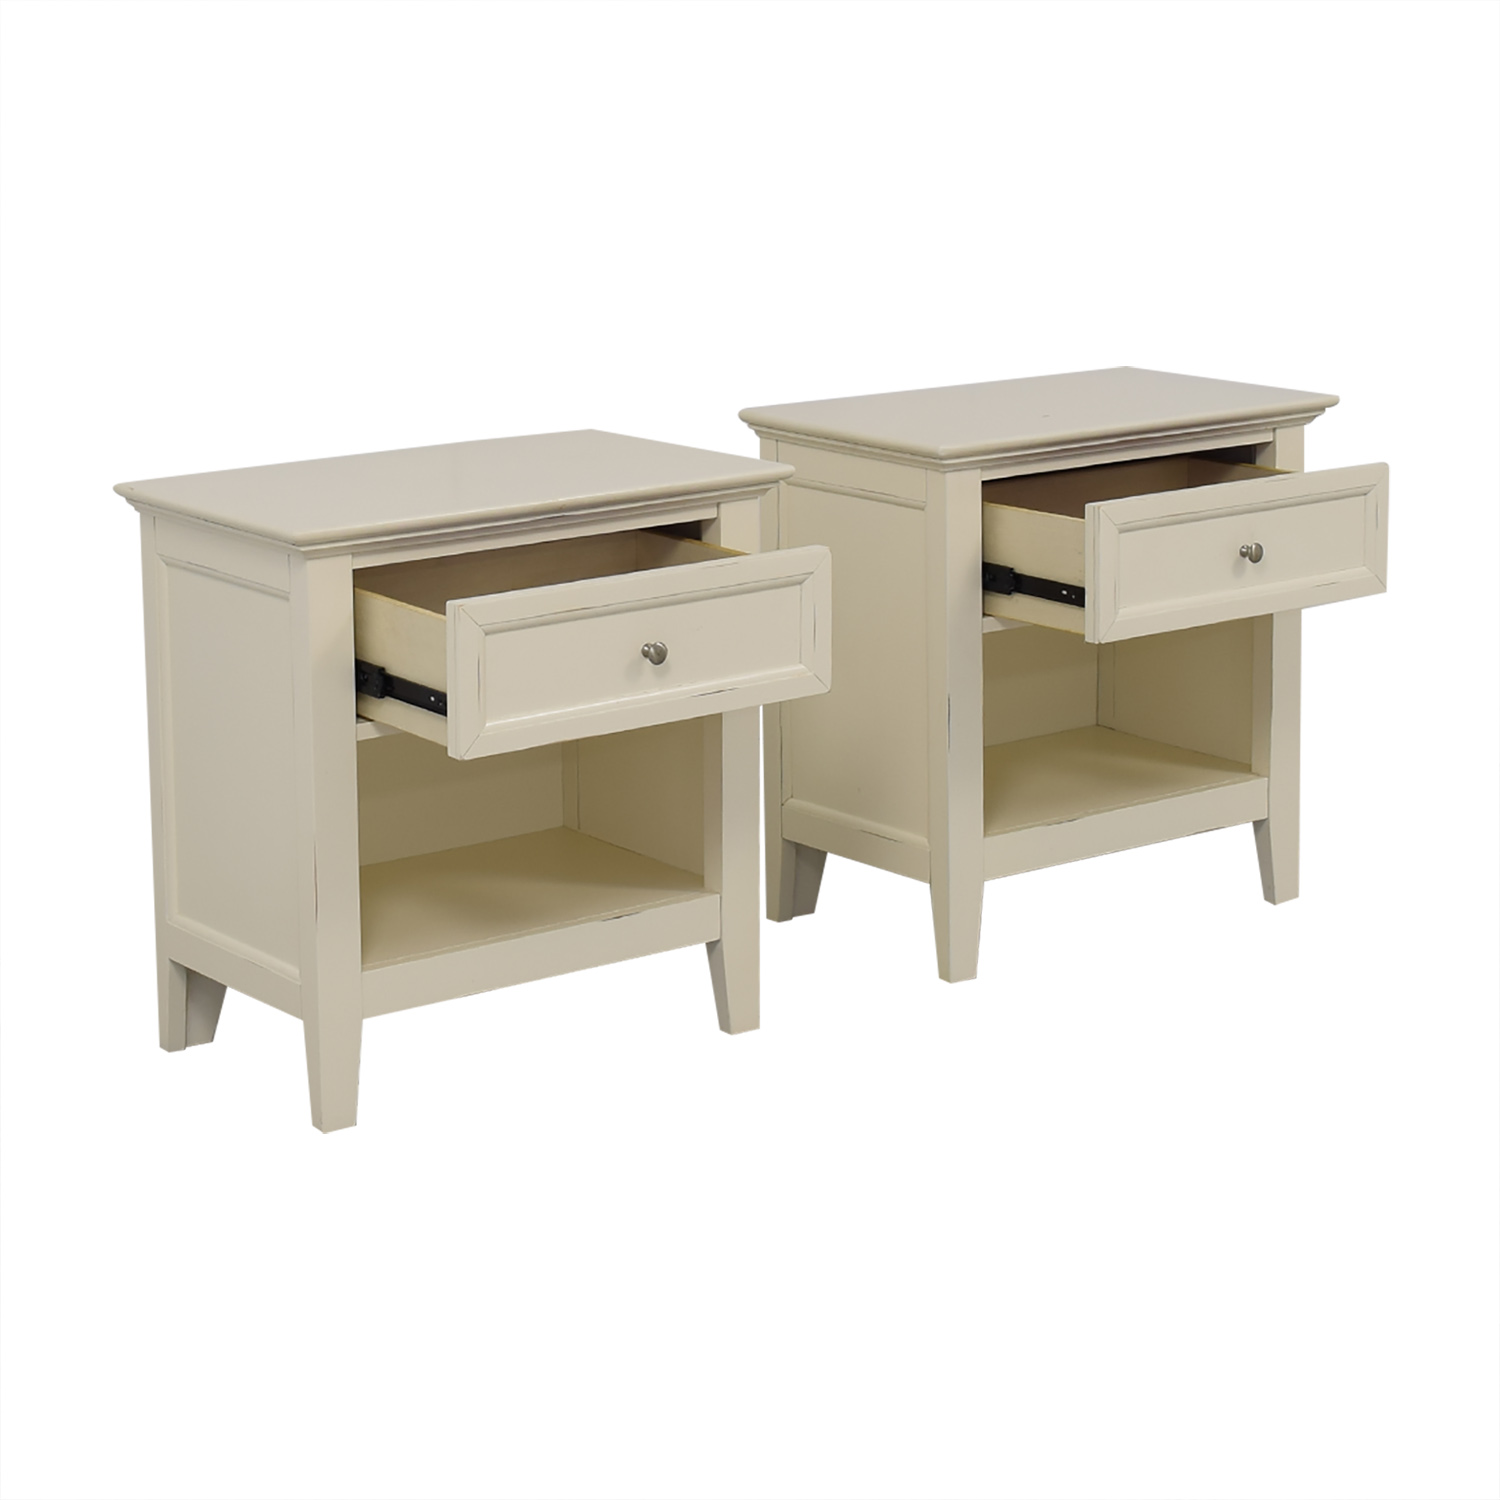 Macy's Sanibel Nightstands Macy's